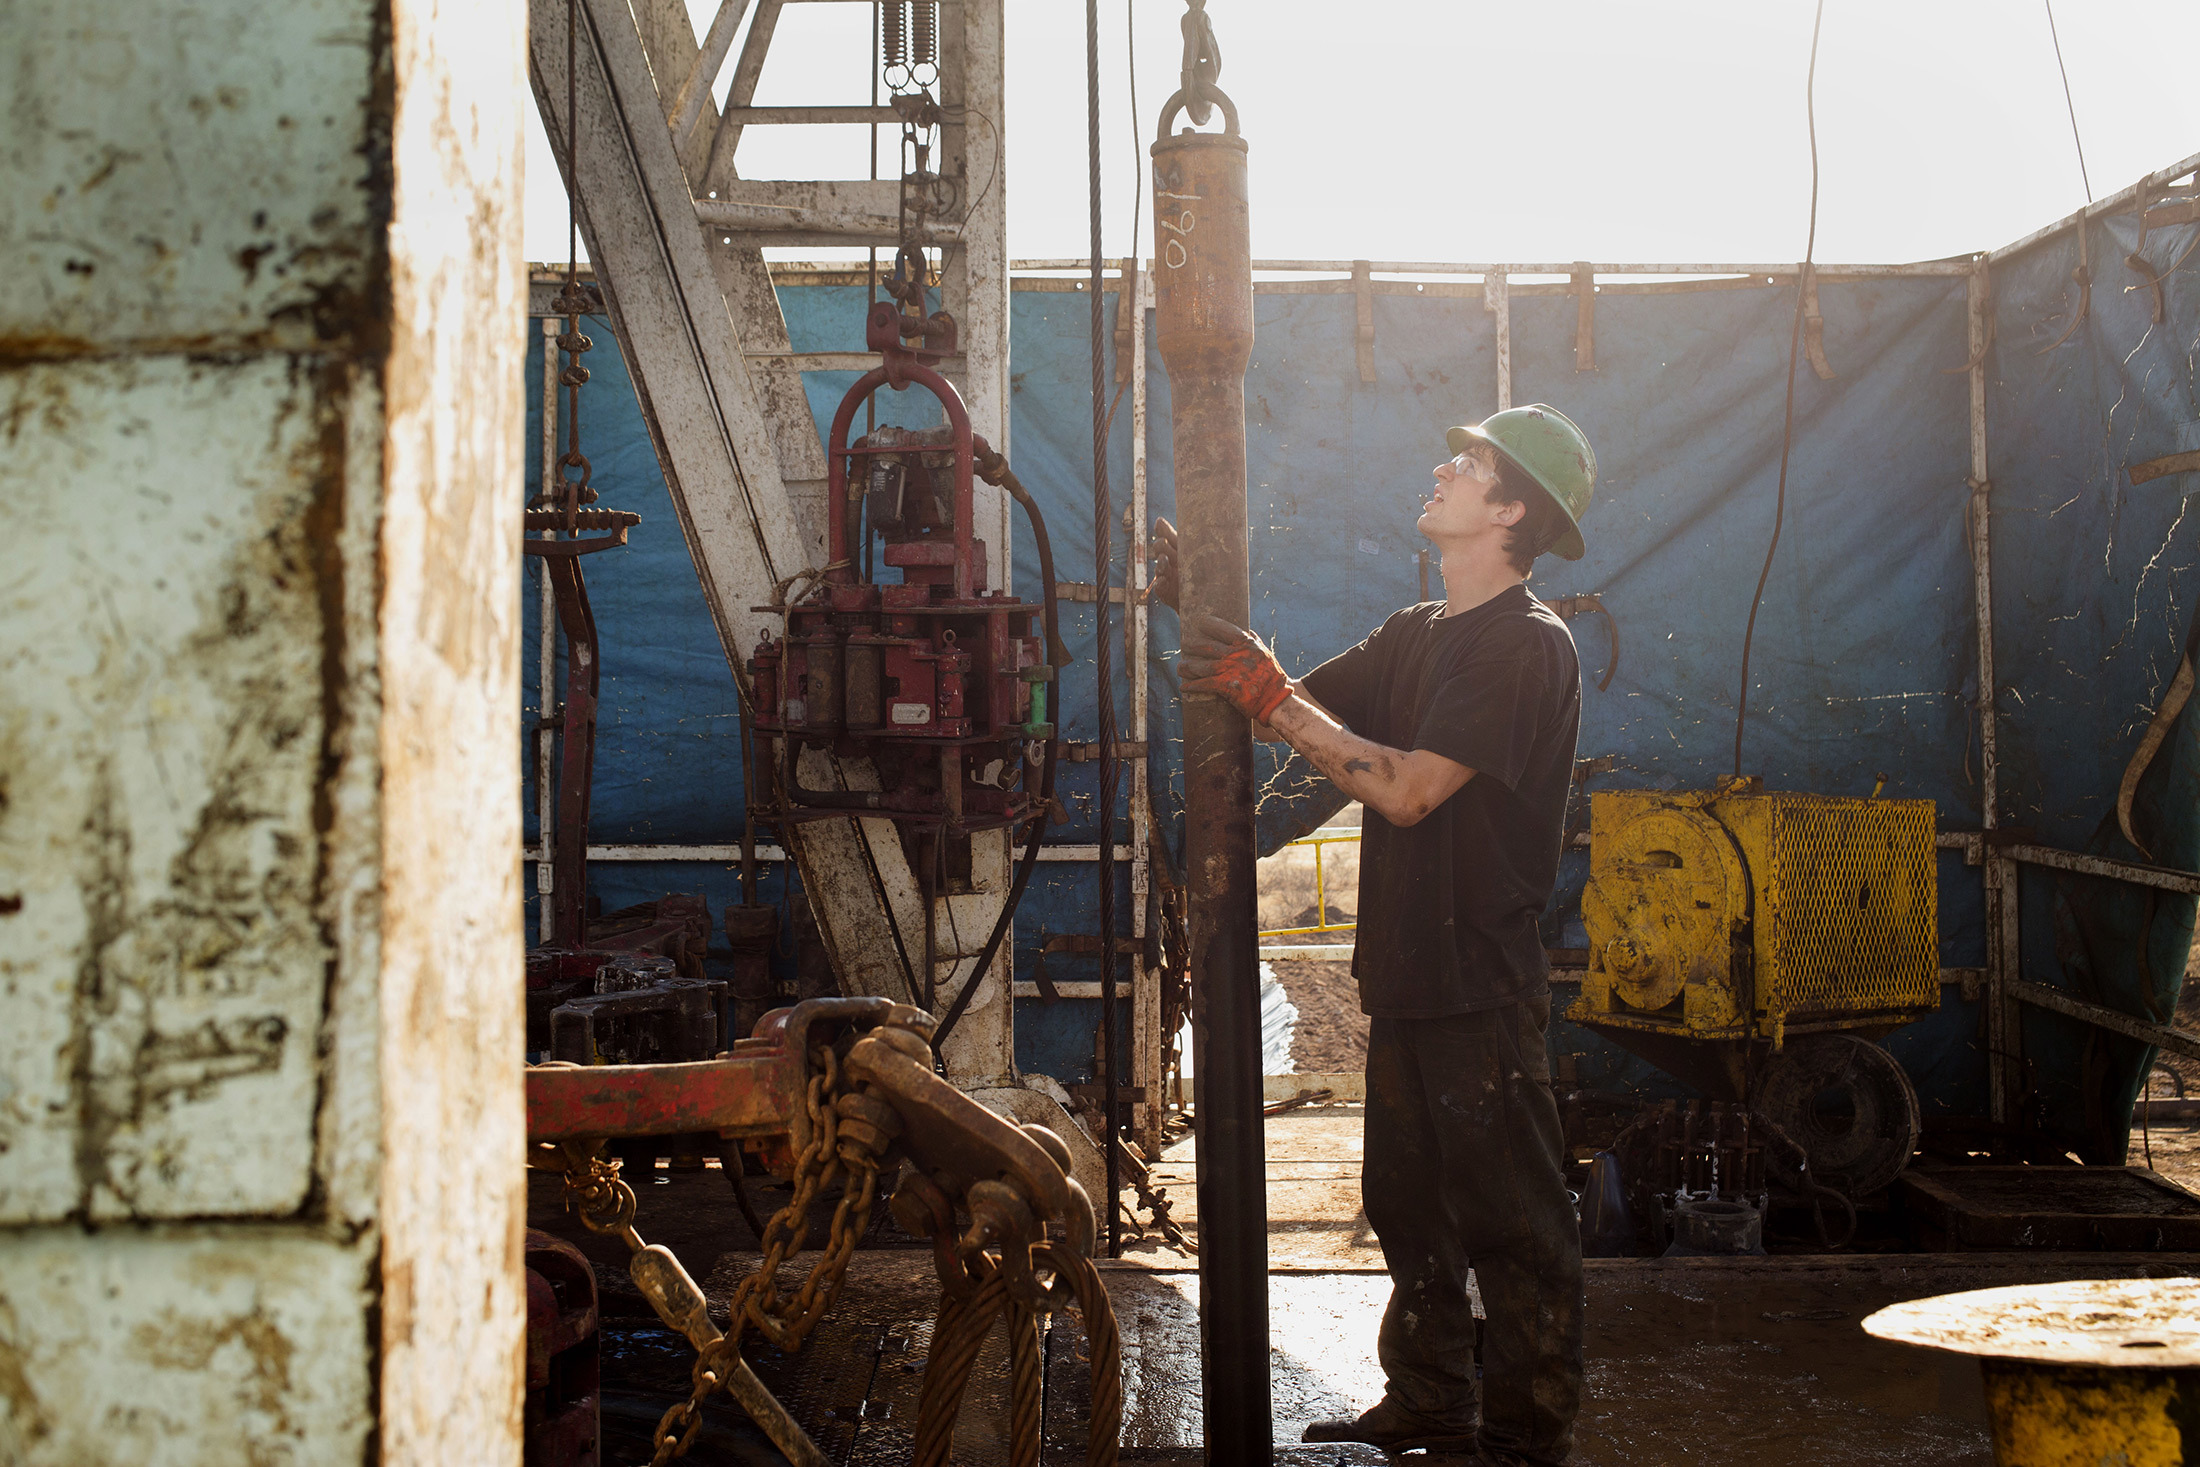 A worker checks the drilling rig before attaching it to the turntable on Endeavor Energy Resources LP's Big Dog Drilling Rig 22 in the Permian basin outside of Midland, Texas, U.S., on Friday, Dec. 12, 2014. Of all the booming U.S. oil regions set soaring by a drilling renaissance in shale rock, the Permian and Bakken basins are among the most vulnerable to oil prices that settled at $57.81 a barrel Dec. 12. With enough crude by some counts to exceed the reserves of Saudi Arabia, theyre also the most critical to the future of the U.S. shale boom. Photographer:  Brittany Sowacke/Bloomberg